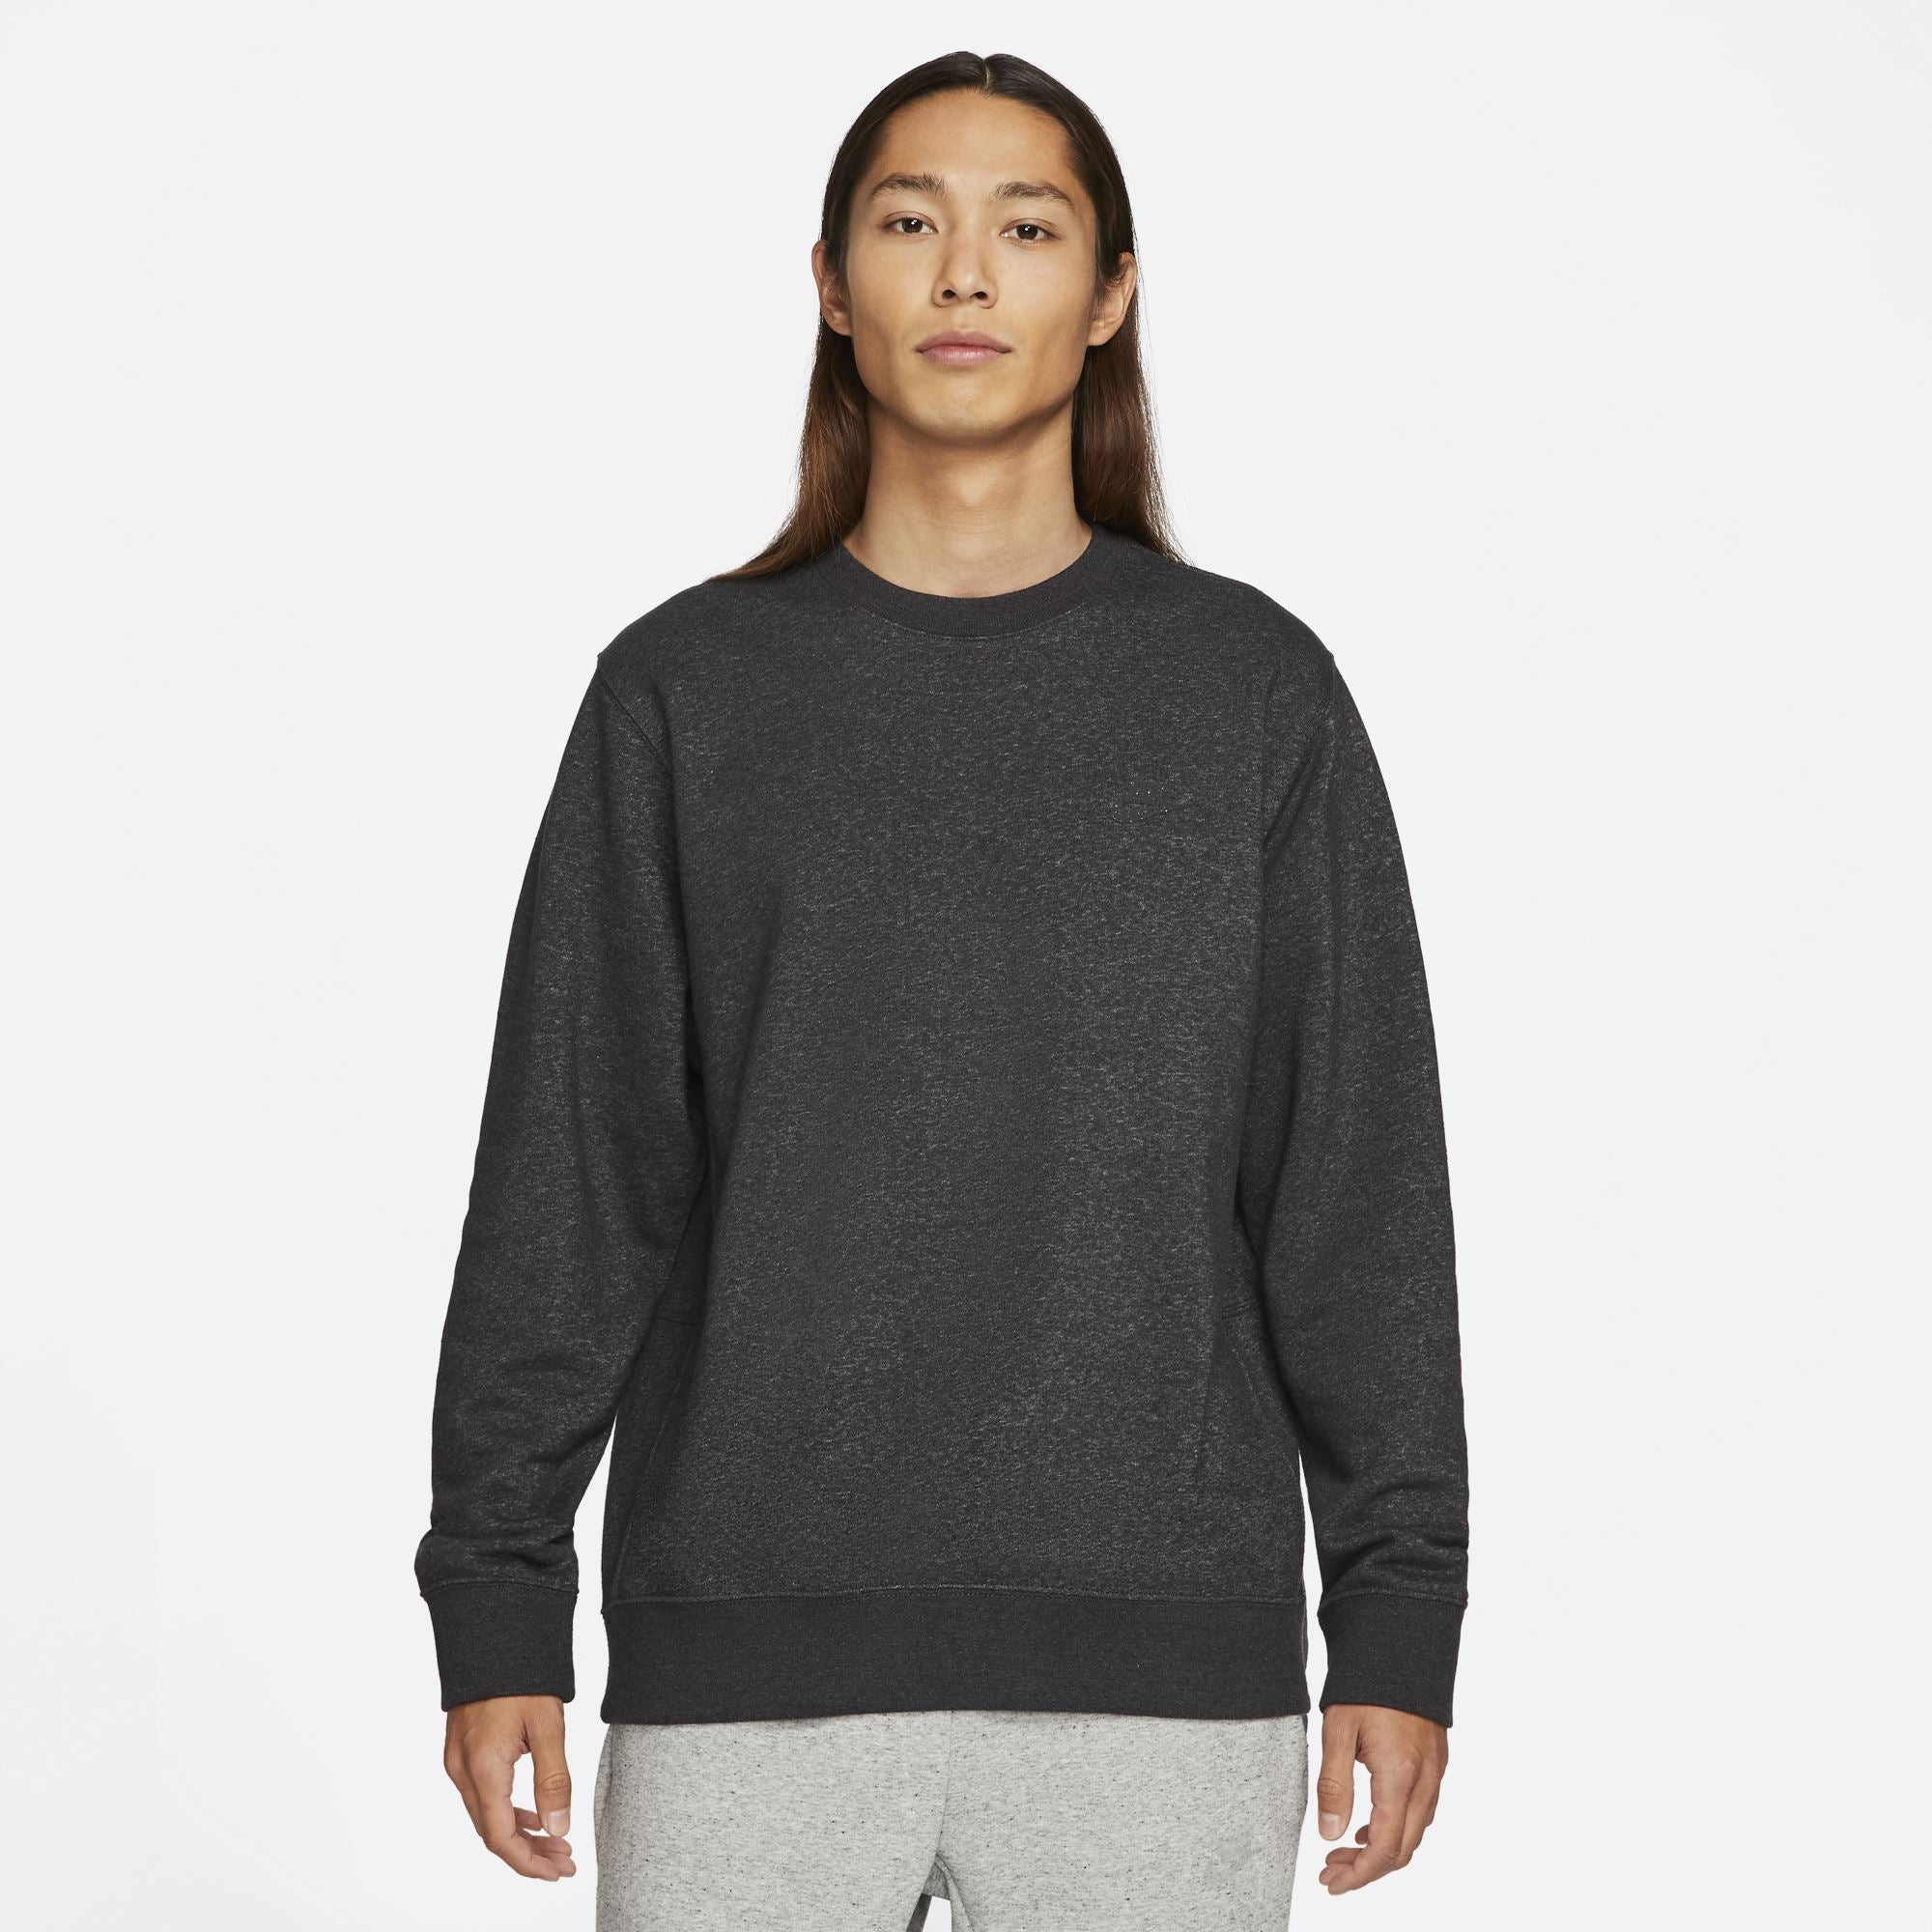 Nike Sportswear Men's Crew - Black/Dk Smoke Grey SP-ApparelFleece-Mens Nike